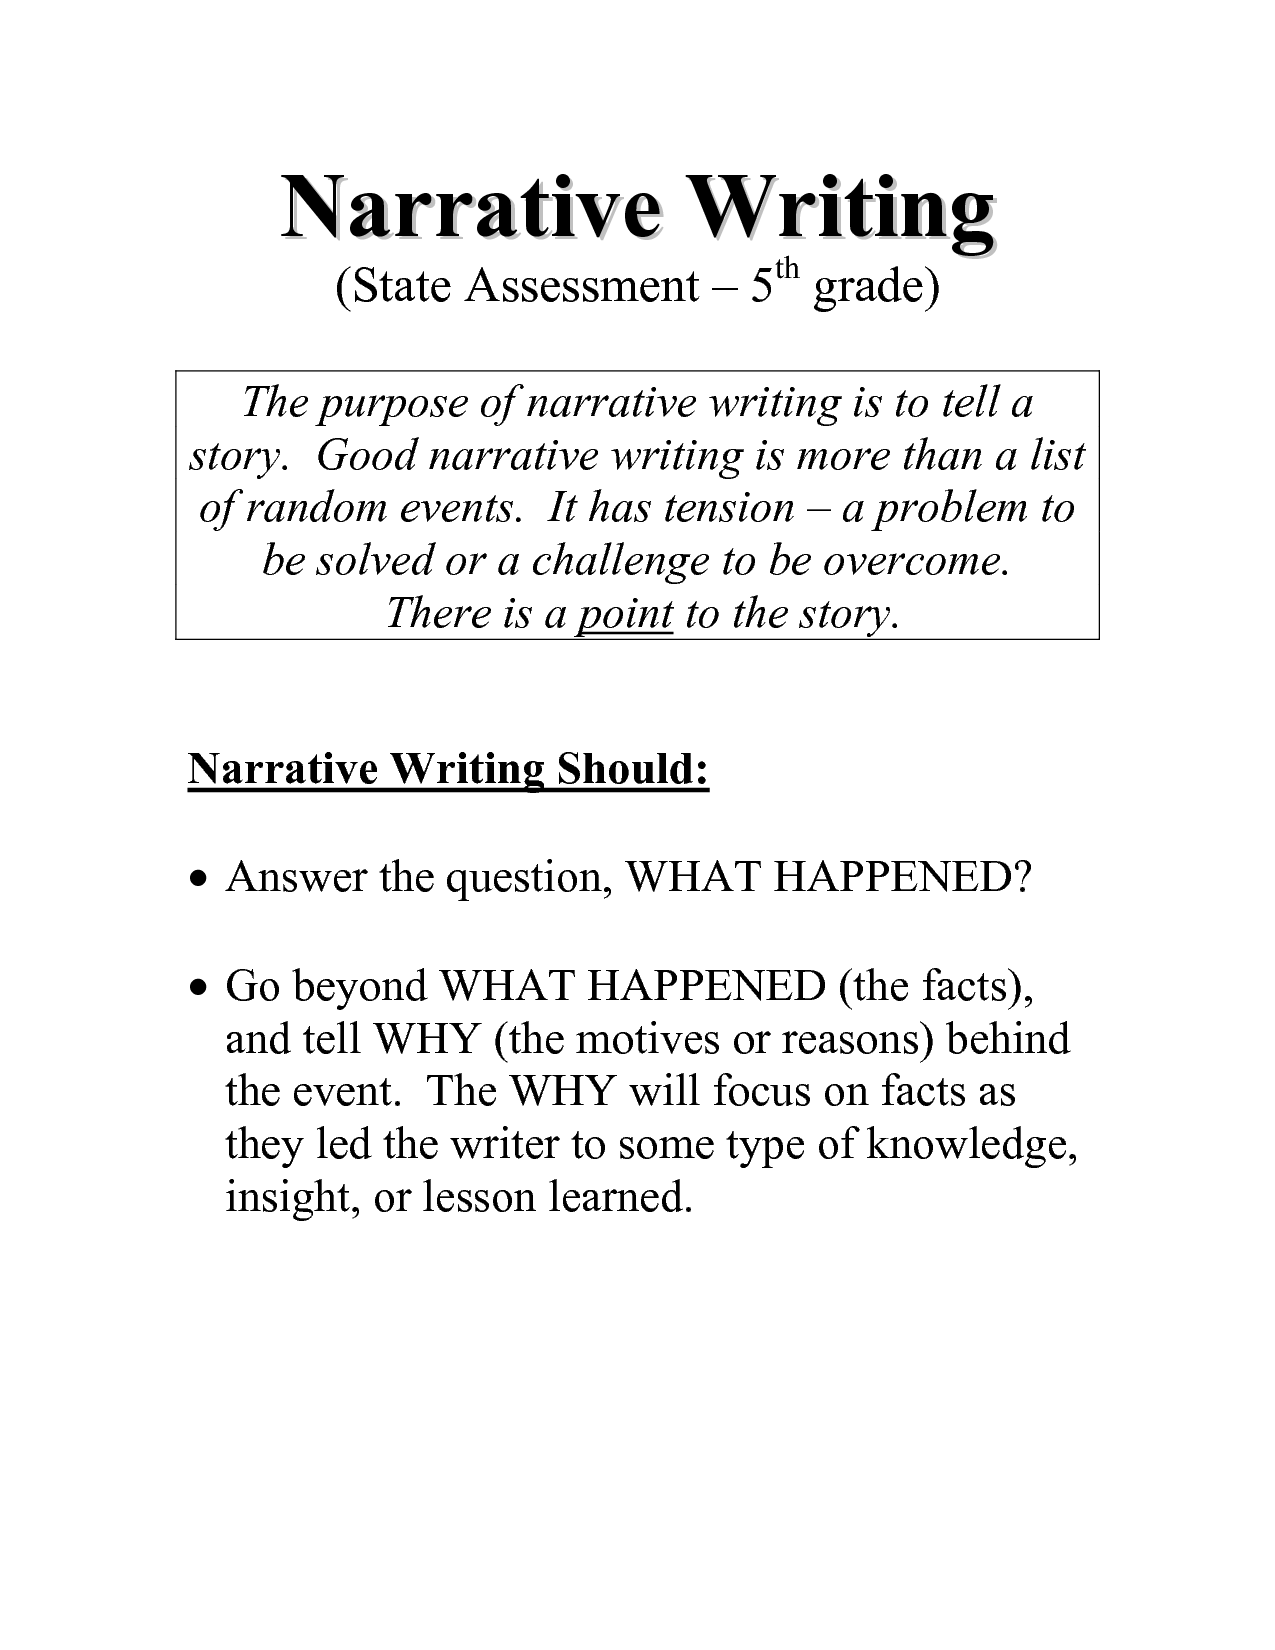 personal narrative examples 5th grade